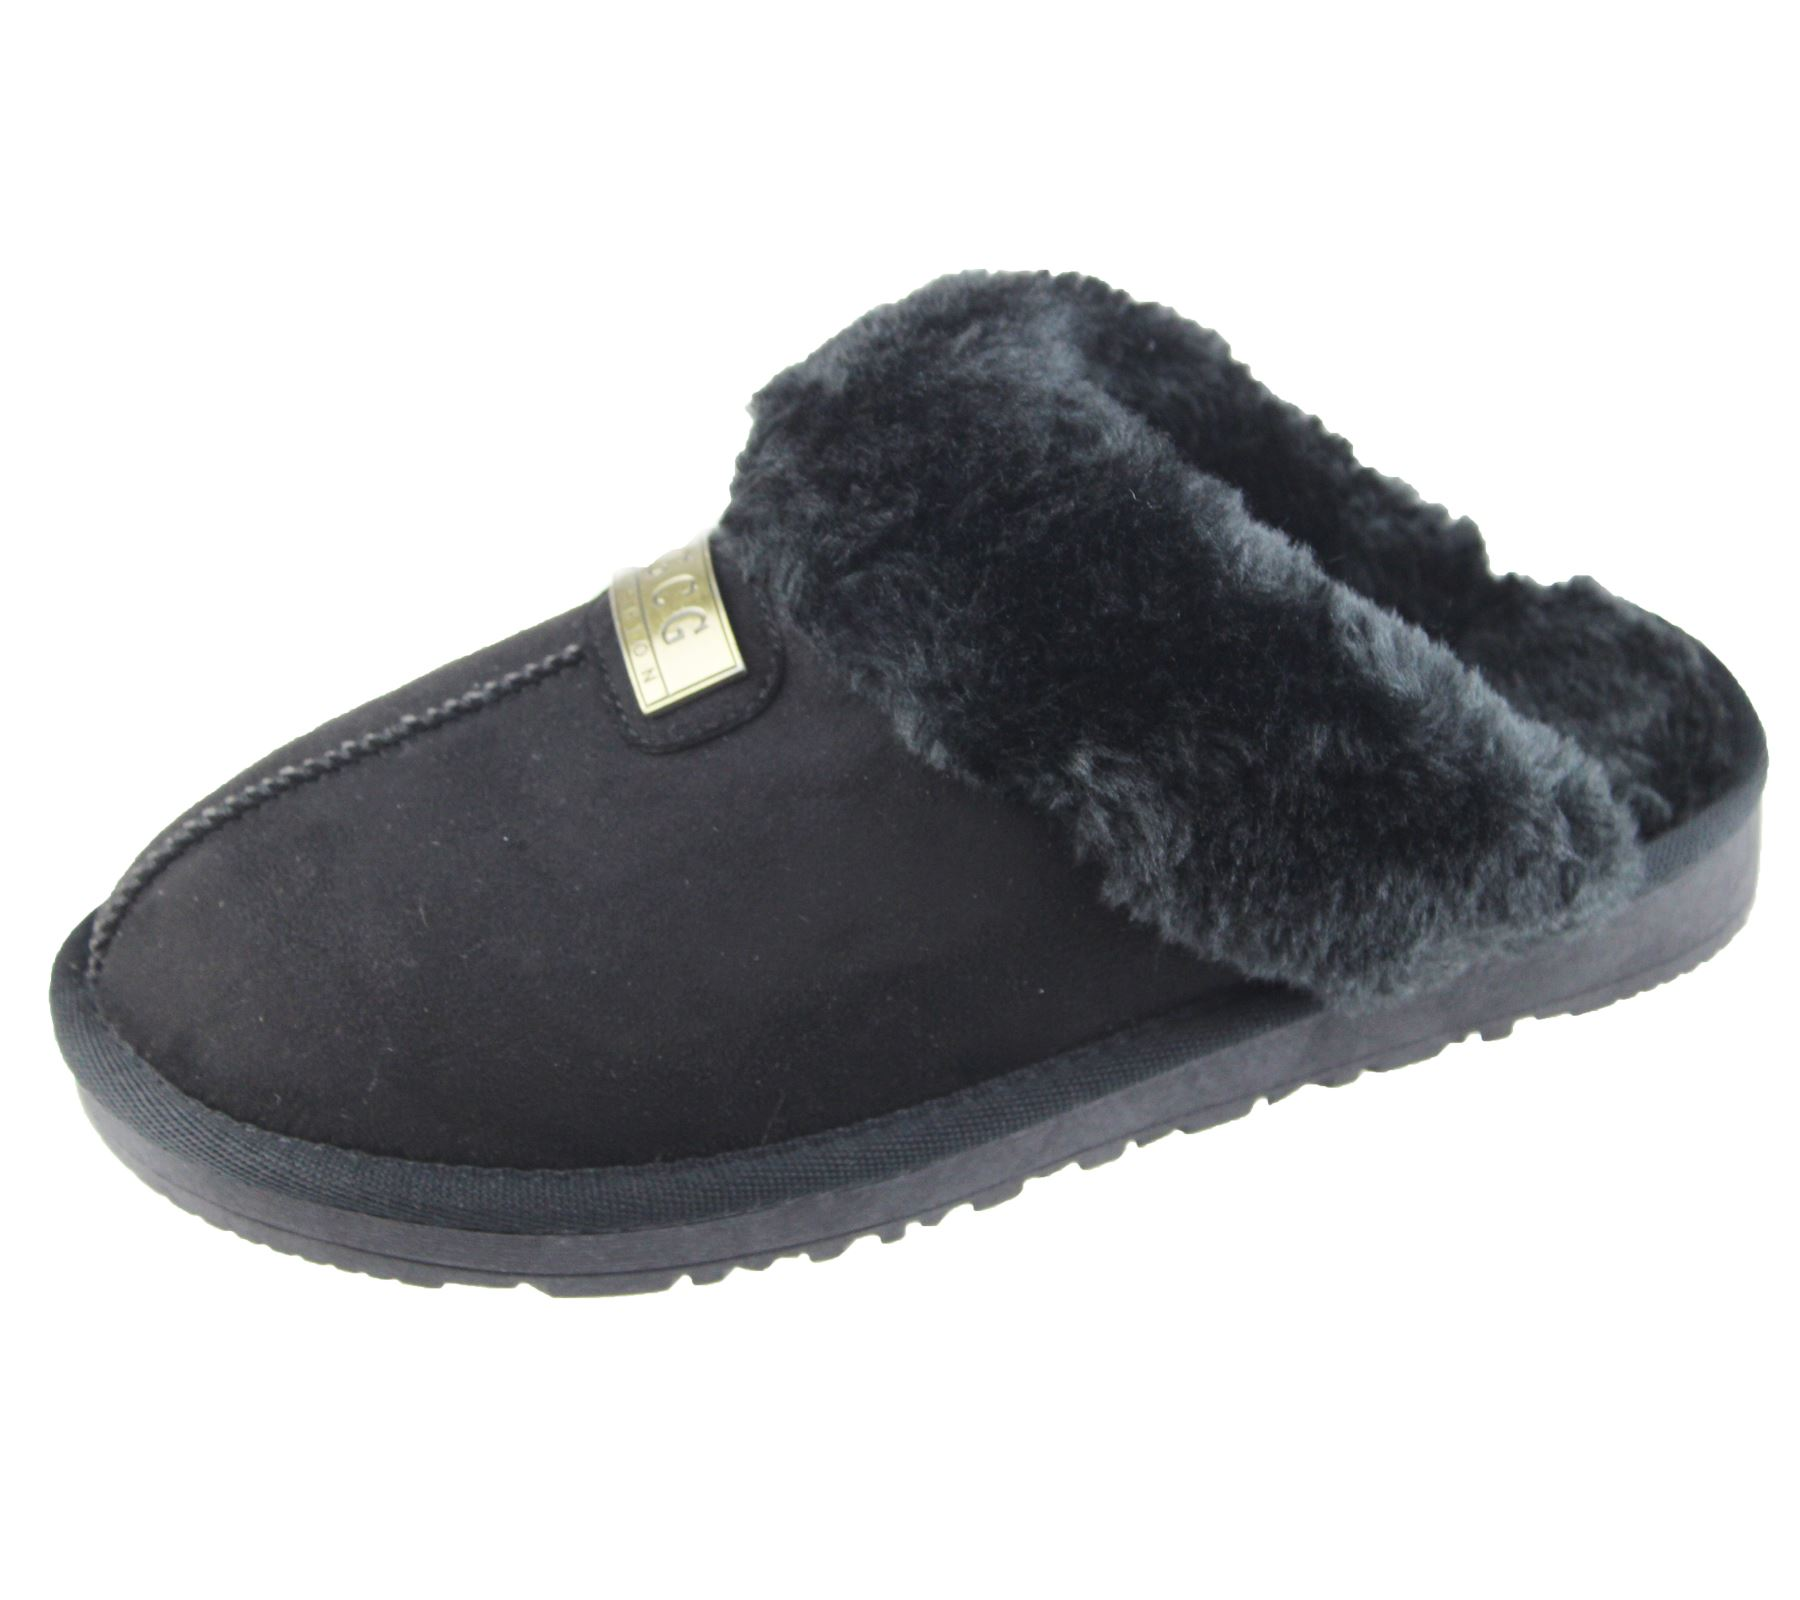 Womens-Fur-Lined-Slippers-Ladies-Mules-Non-Slip-Rubber-Sole-Shoes miniatura 3